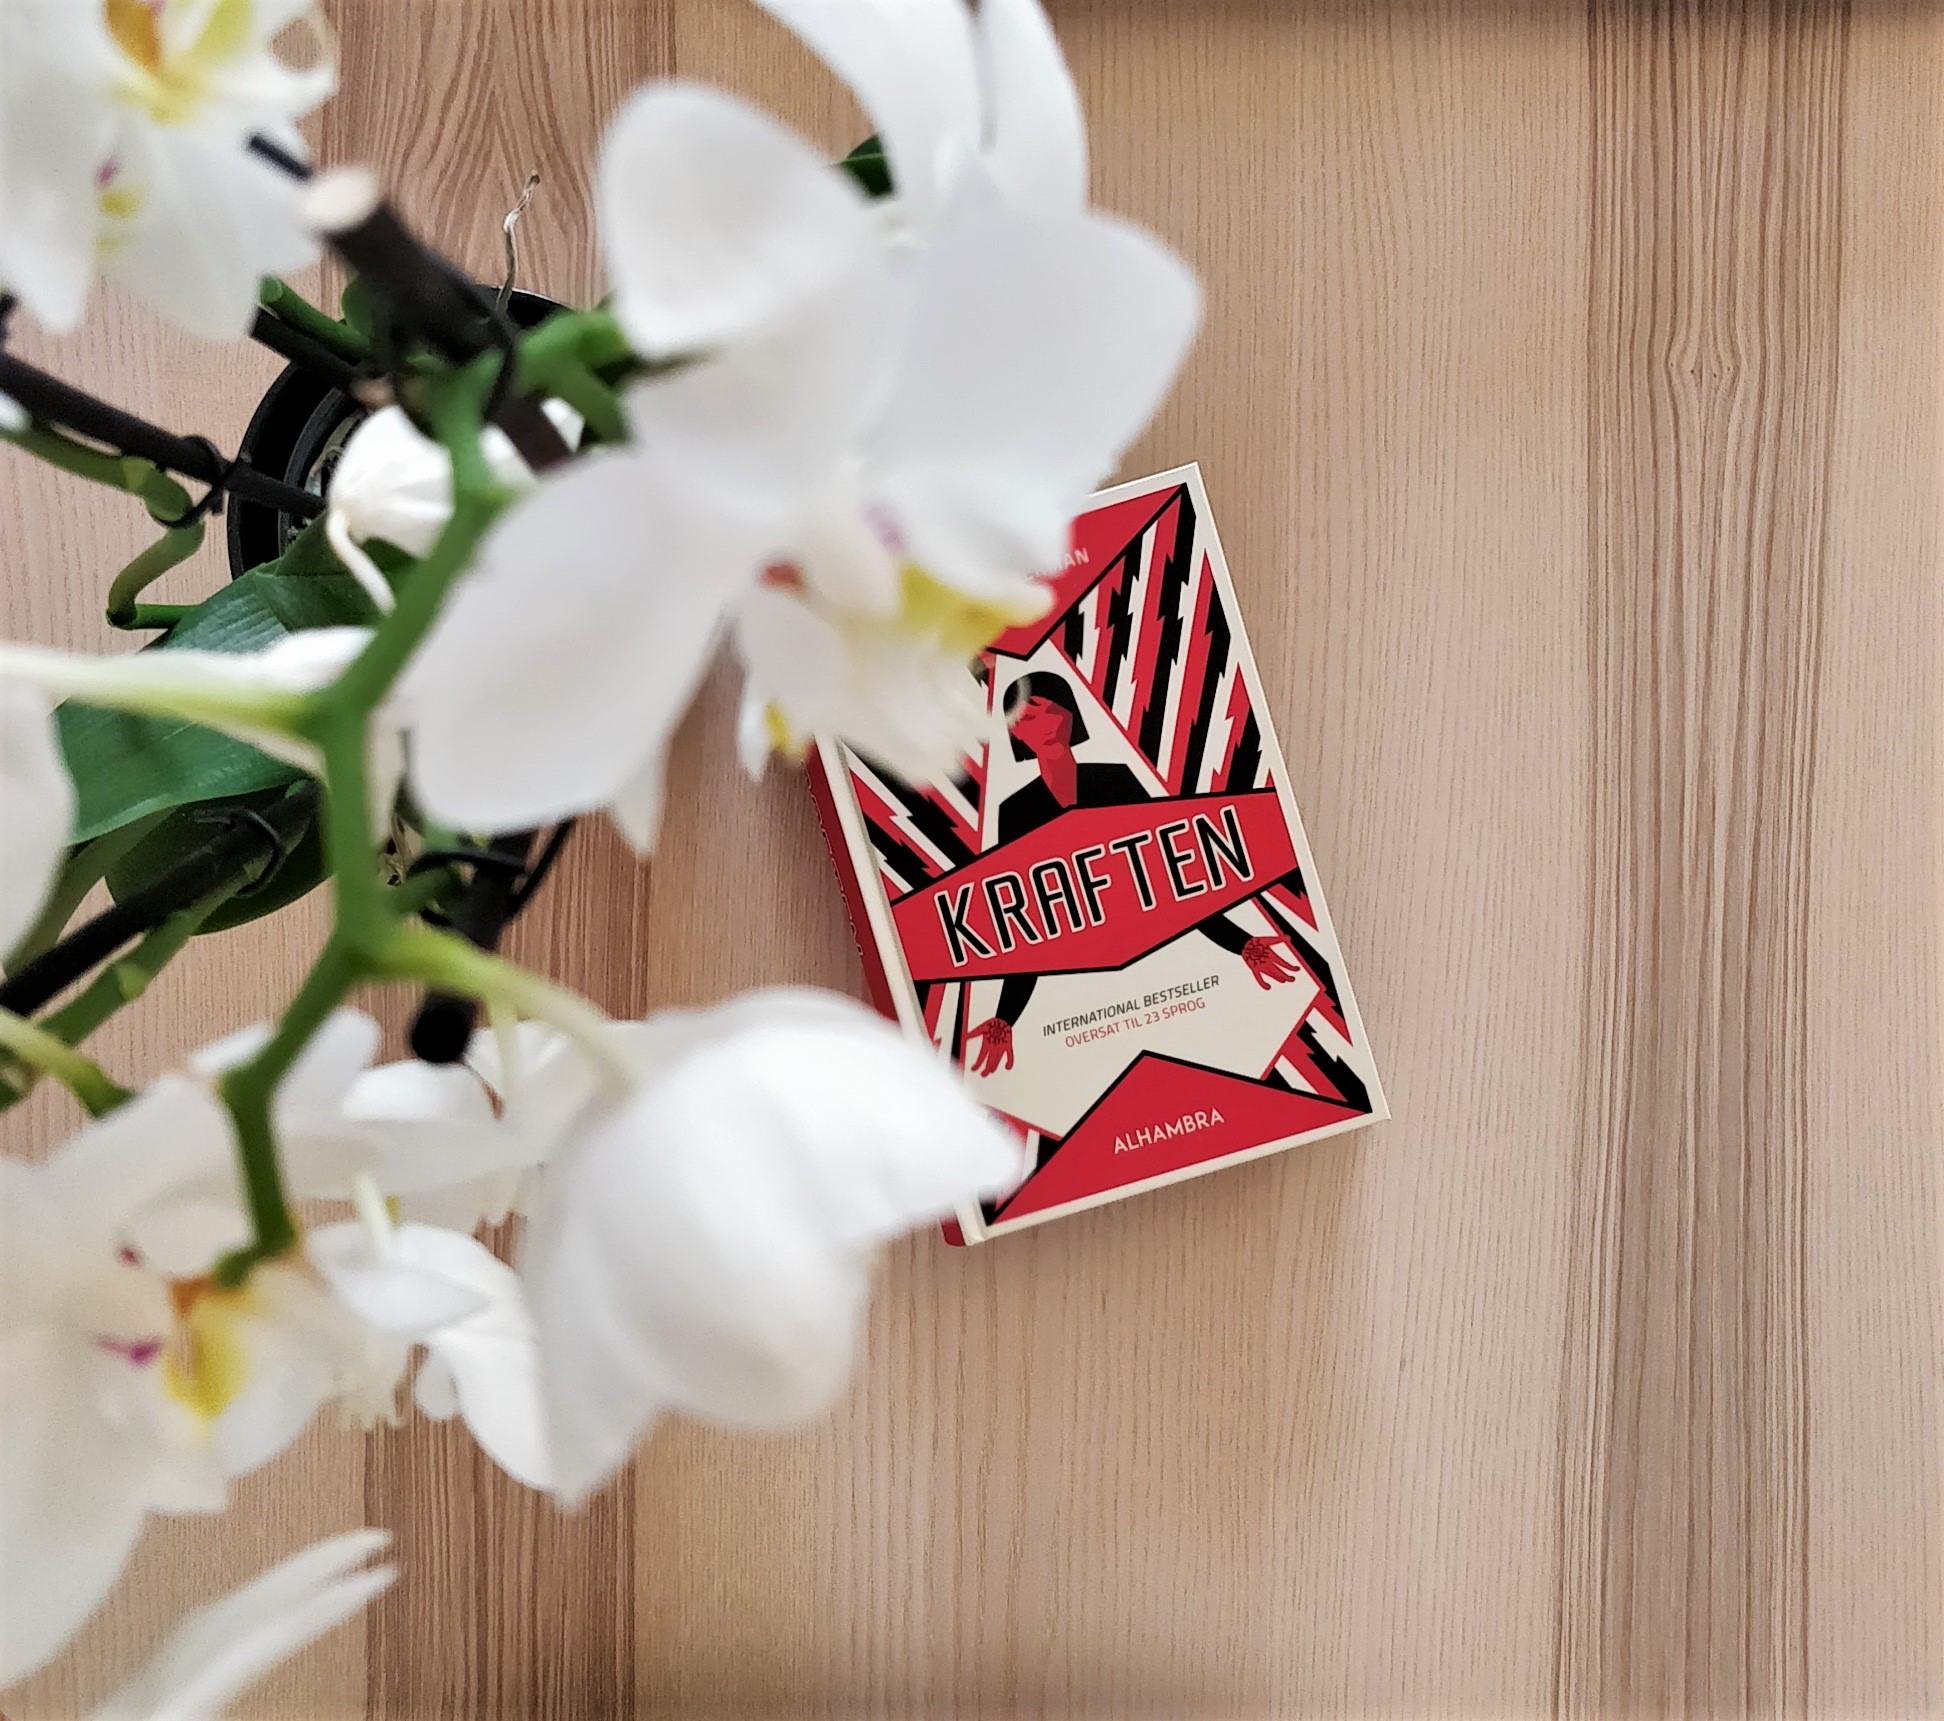 The Danish edition of The Power by Naomi Alderman on a wooden desk.